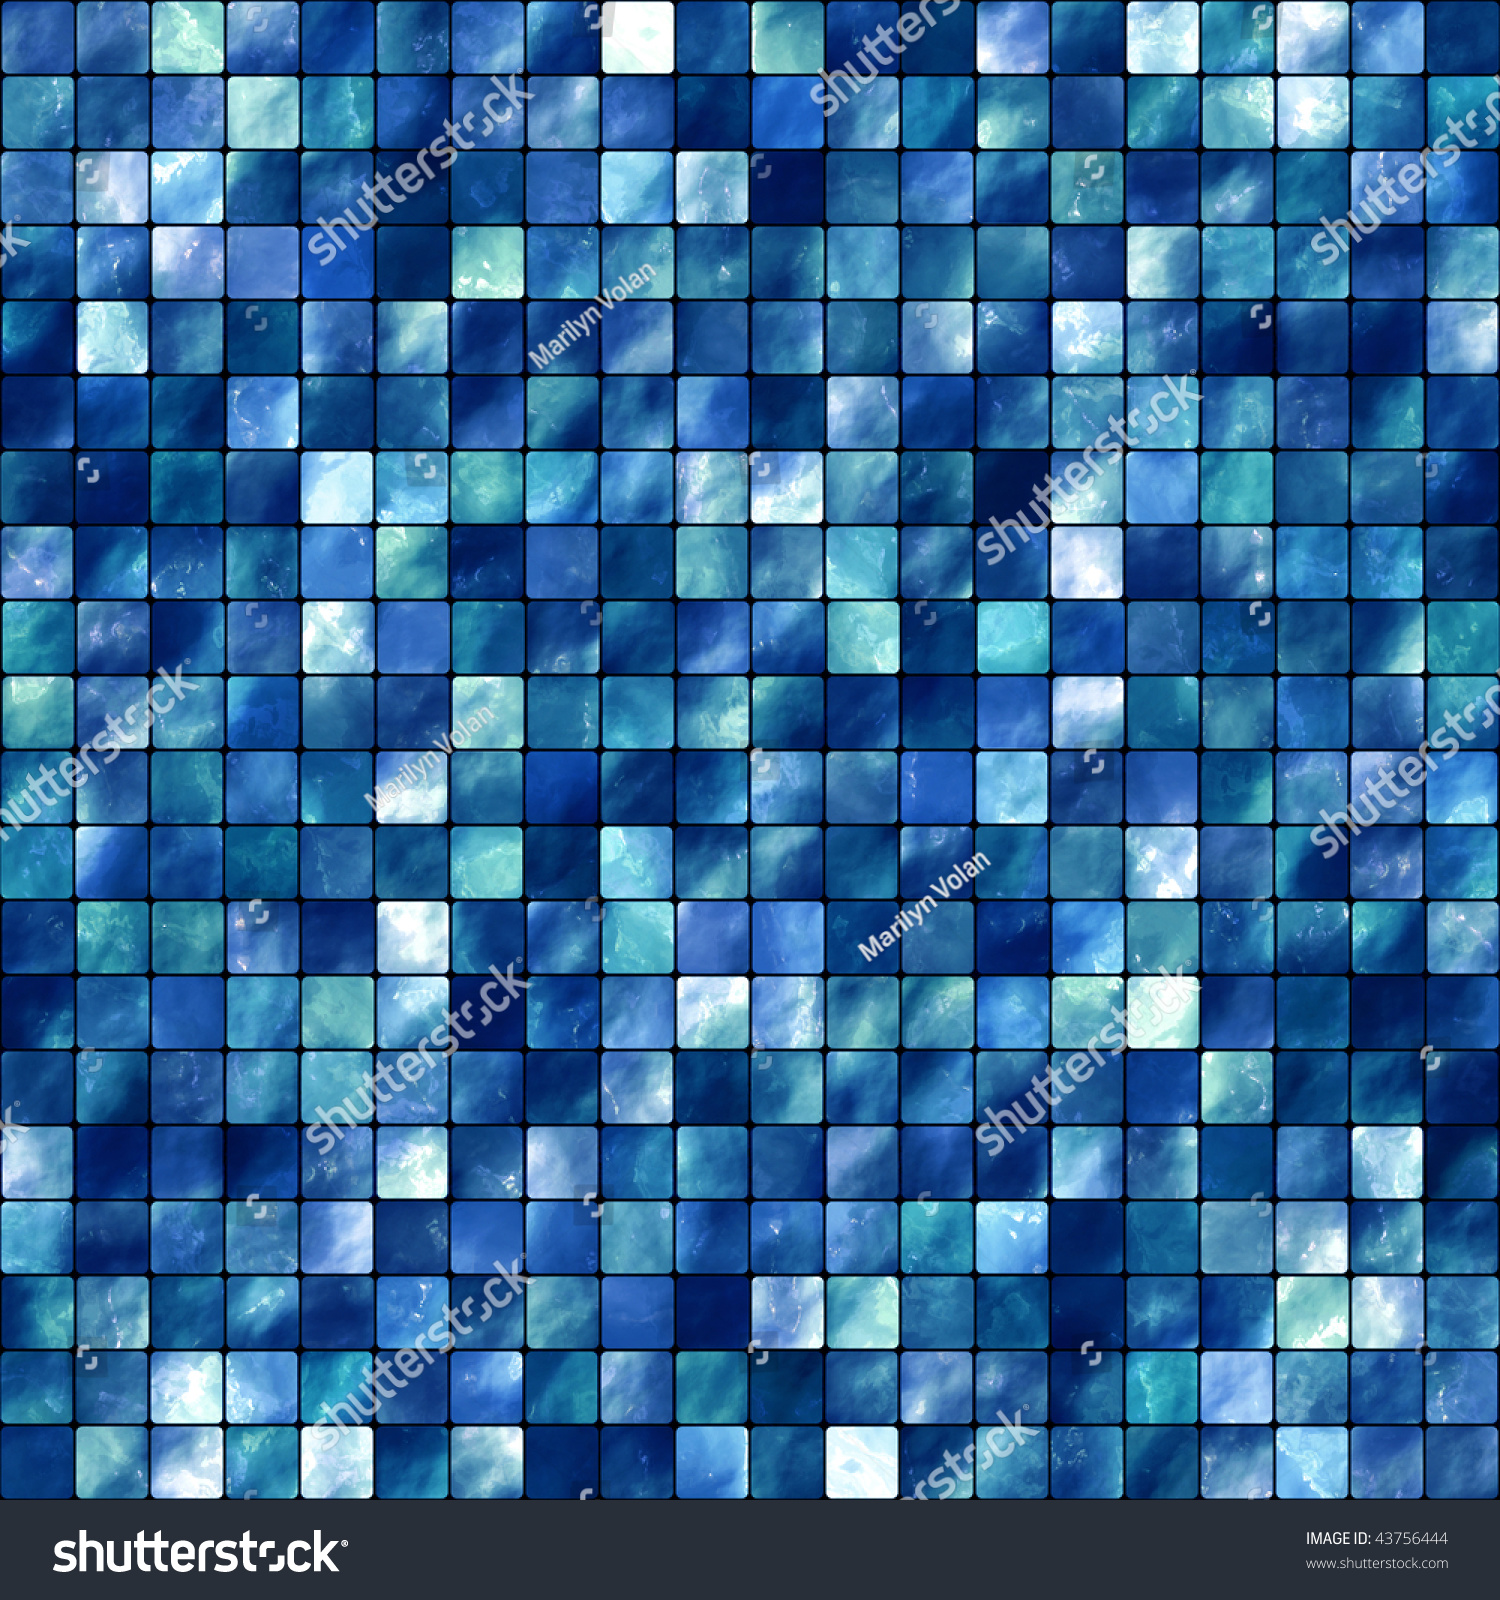 blue tiles. Seamless Blue Tiles Background